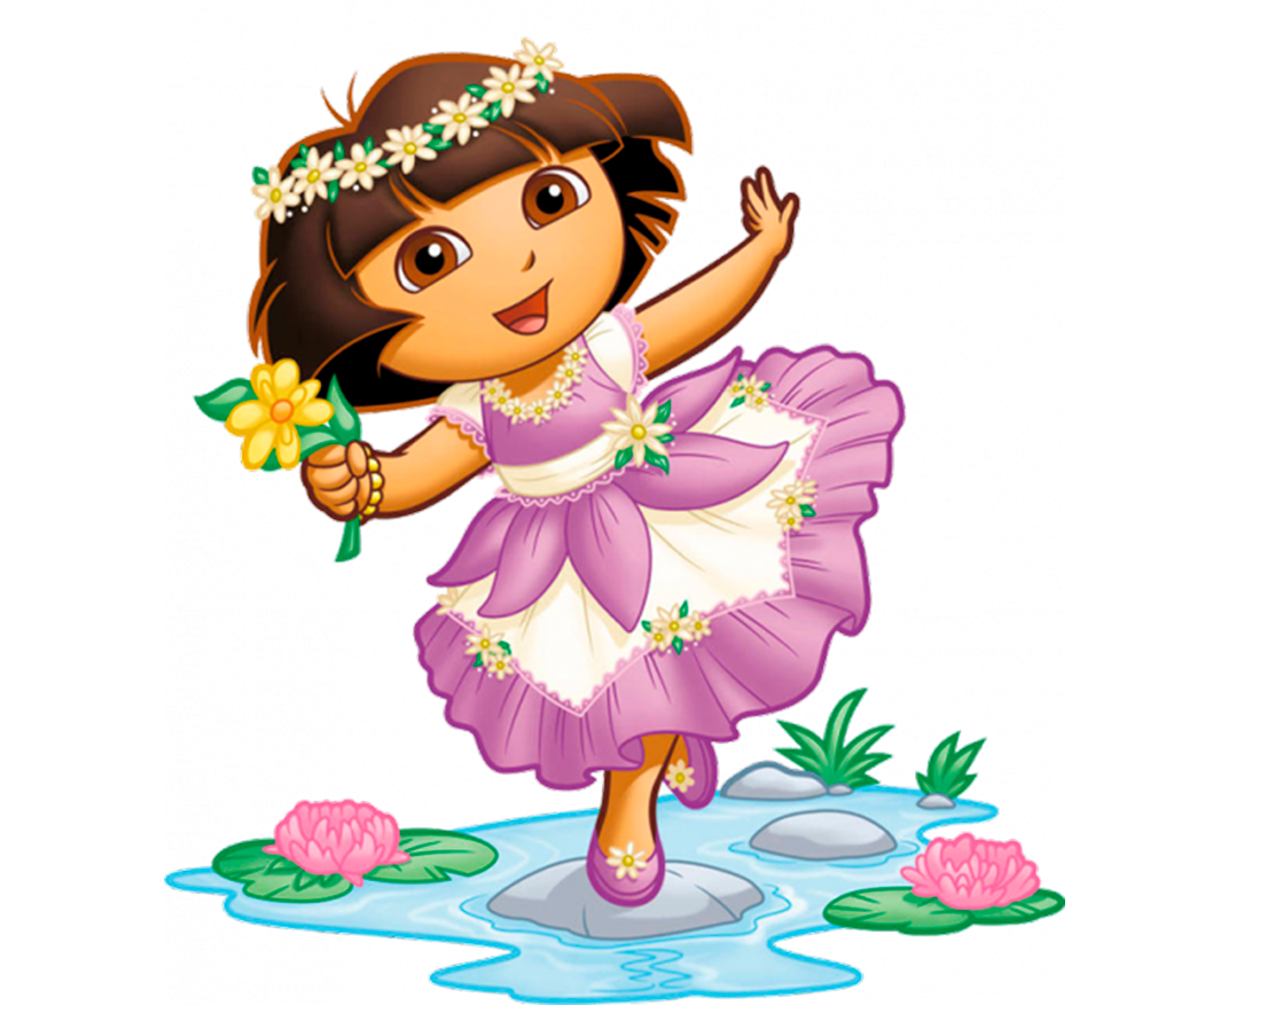 cartoon characters dora the explorer  png Backpack Clip Art Black and White Socks and Shoes Clip Art